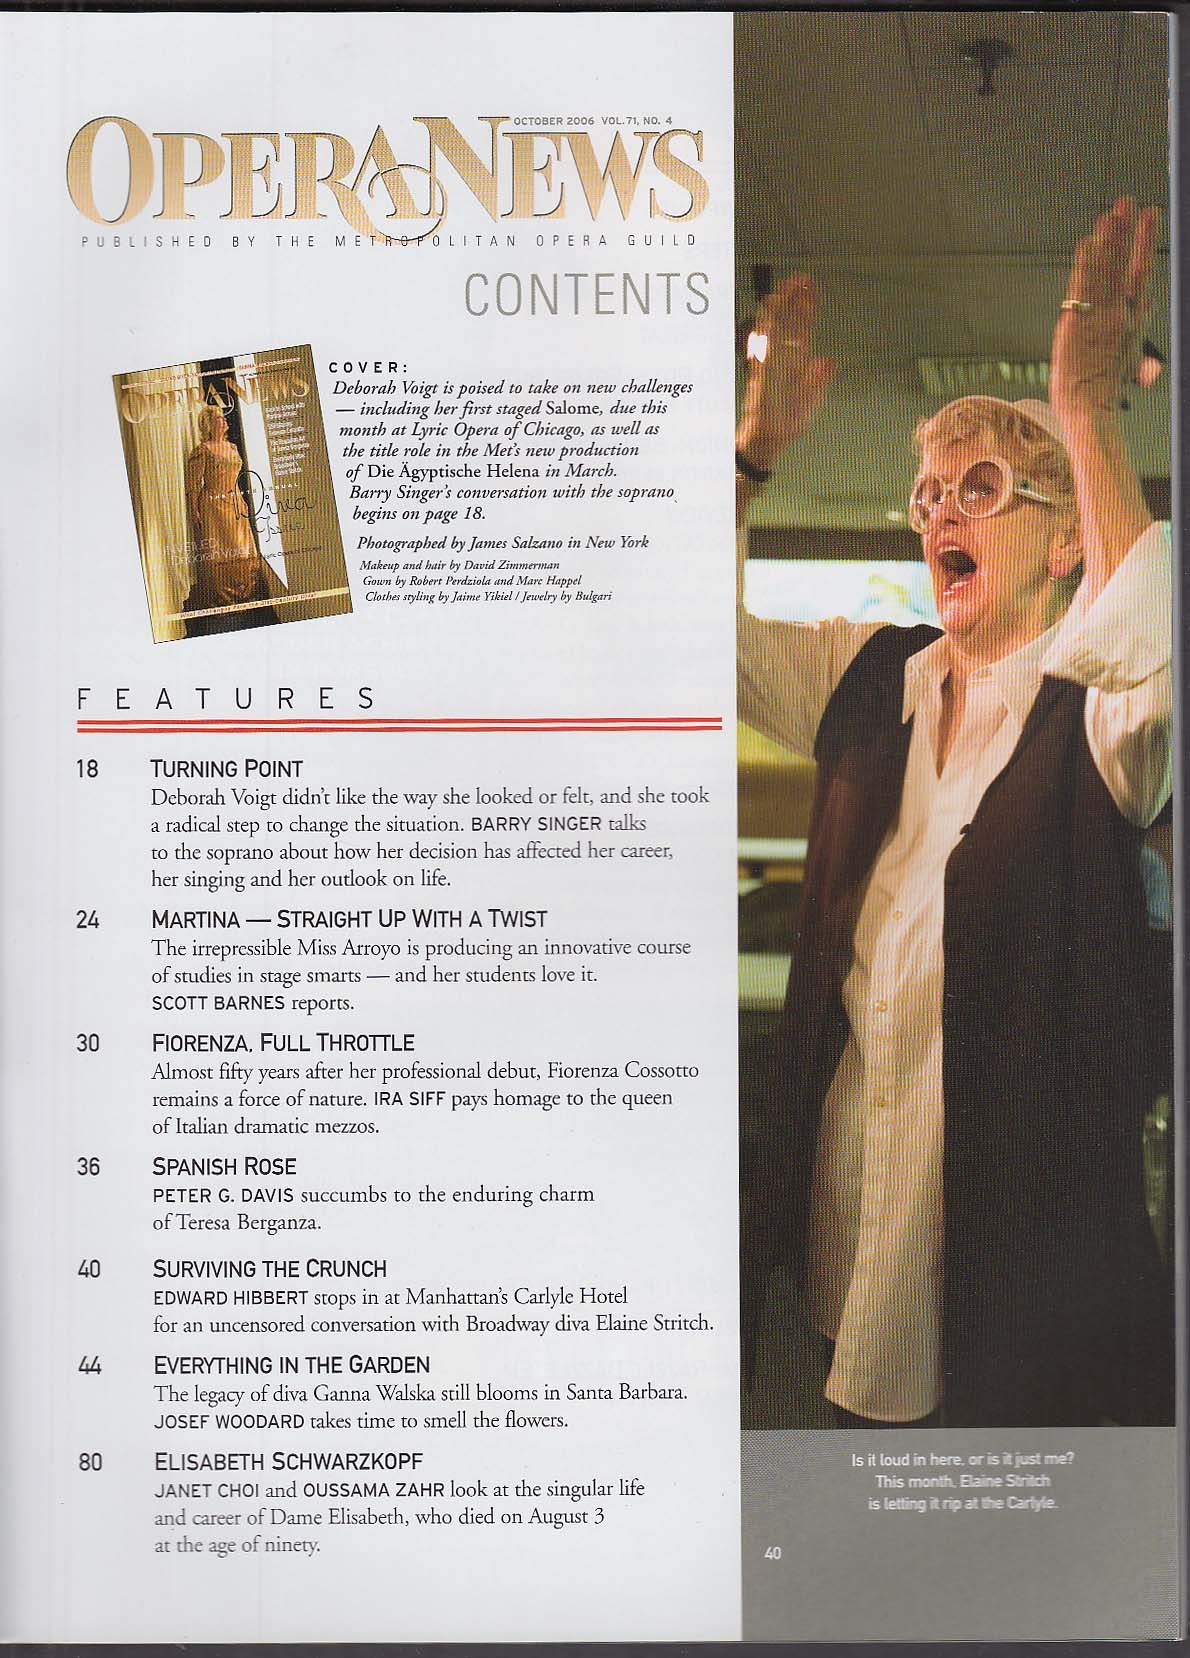 OPERA NEWS Deborah Voigt Martina Arroyo Fiorenaz Cossotto Elaine Stritch 10 2006